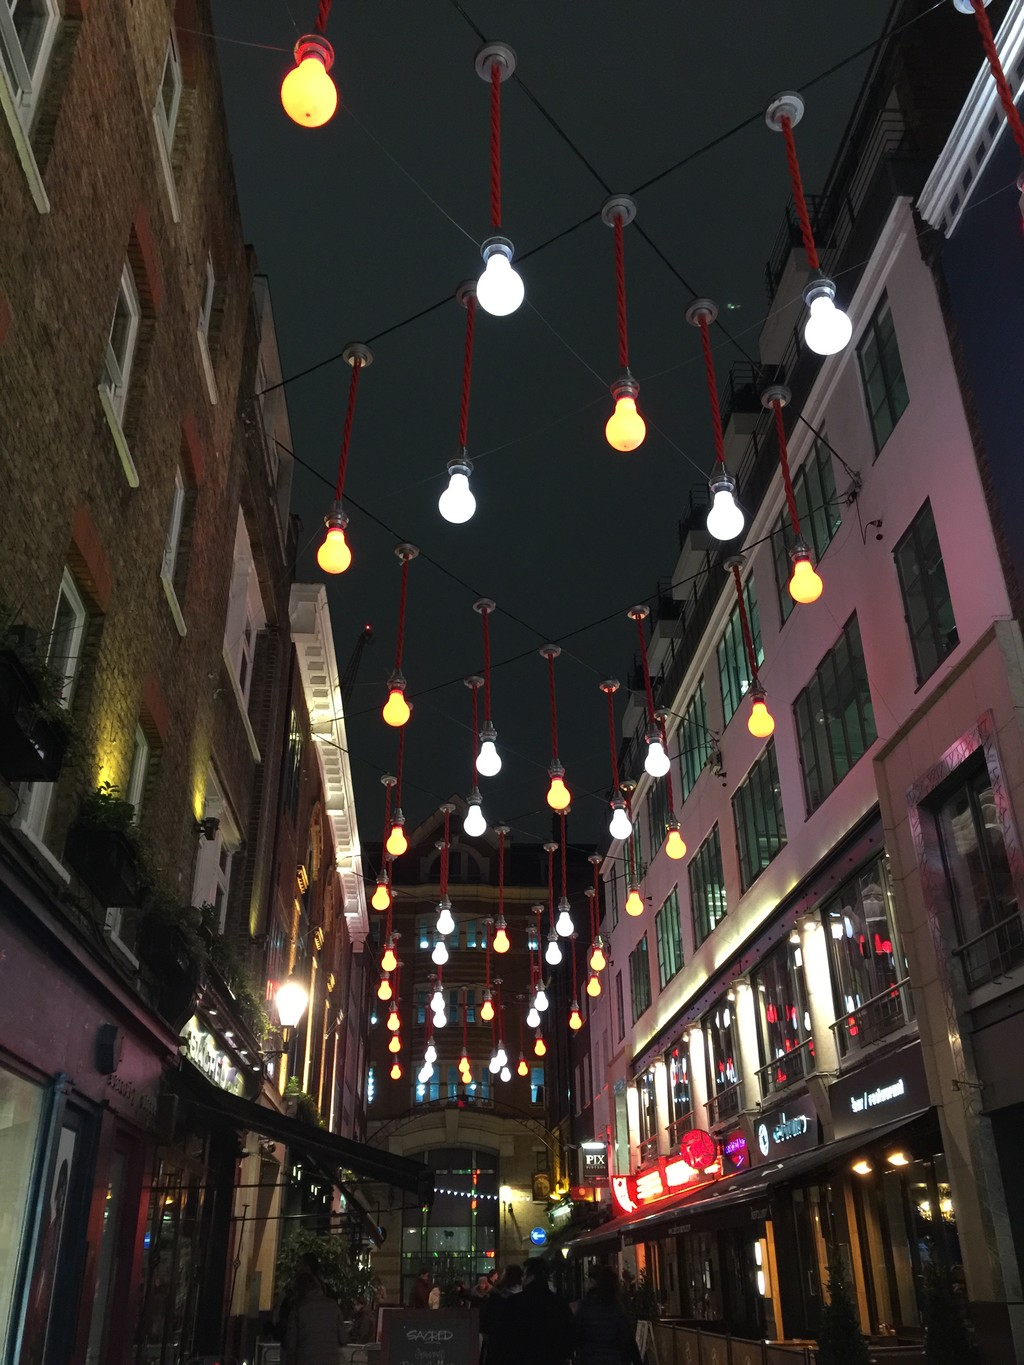 Kingly Court and Carnaby Street